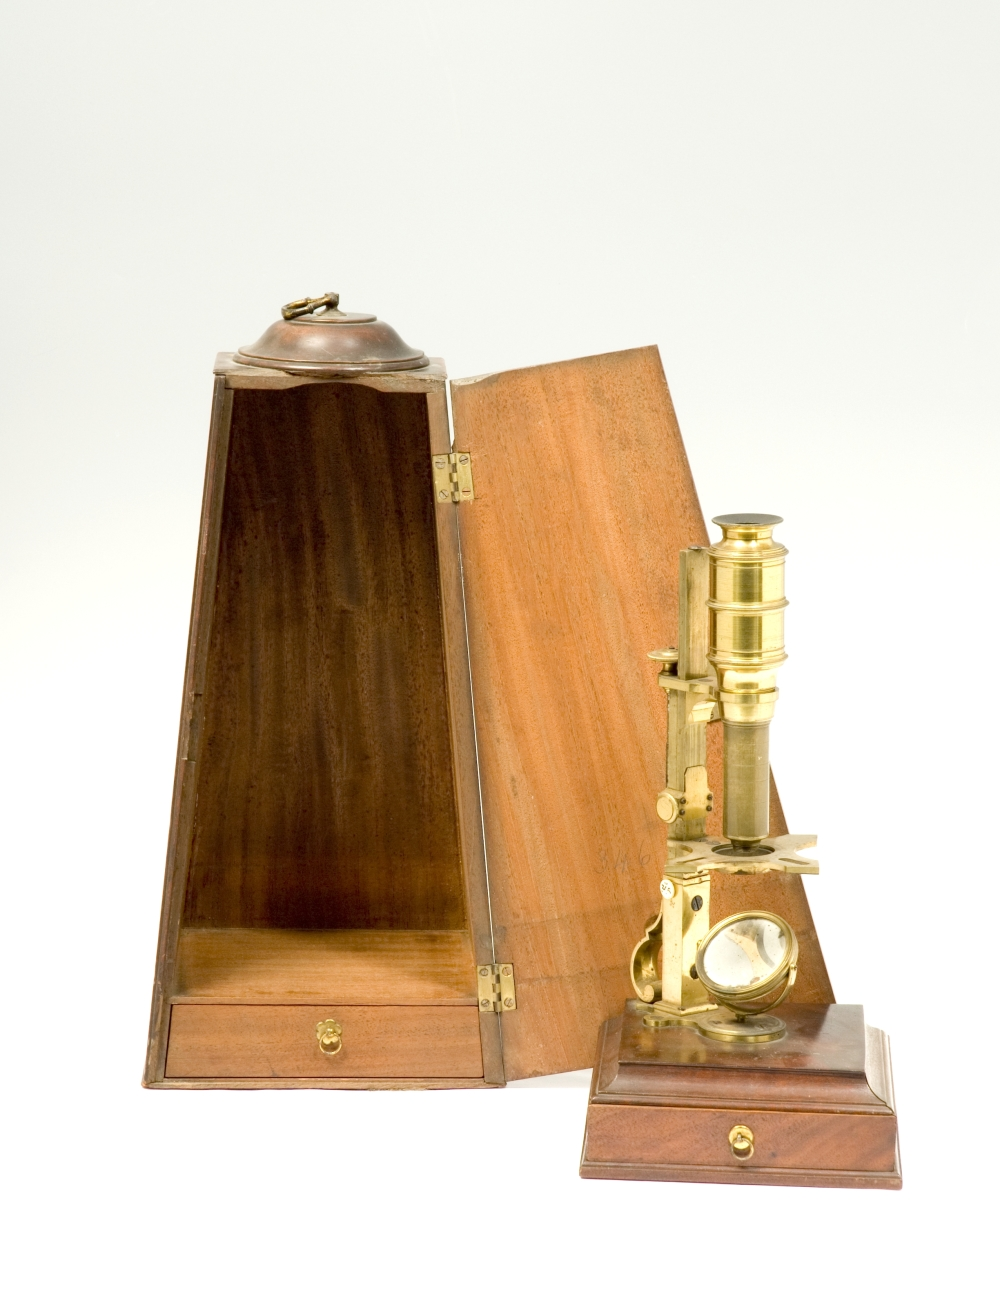 preview image for Cuff-Type Compound Microscope, by H. Shuttleworth, London With Case and Accessories